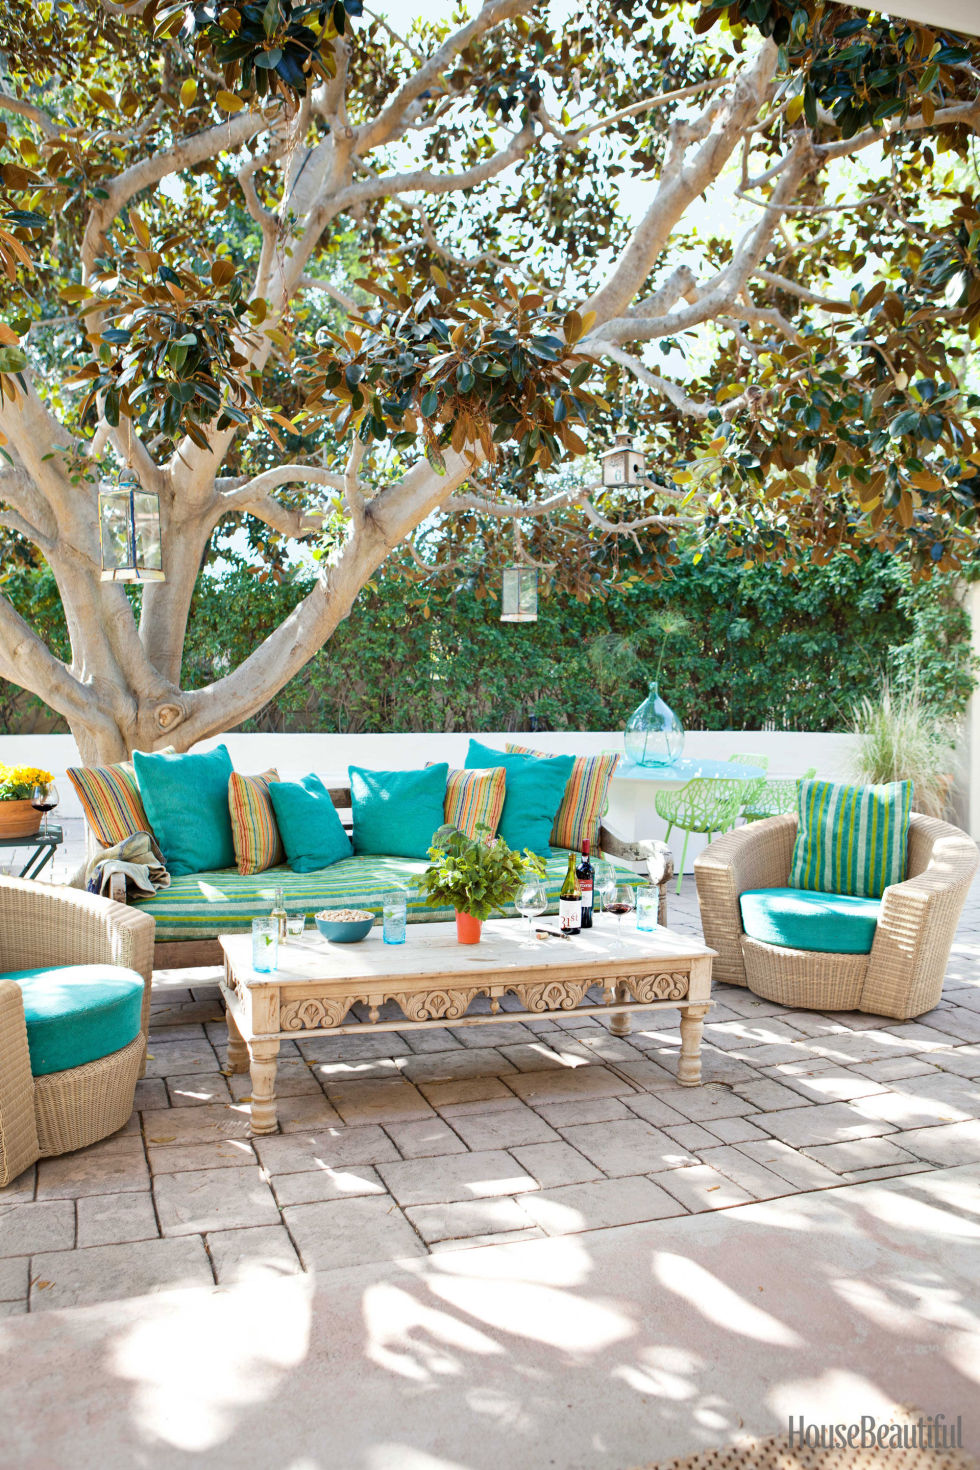 Outdoor Design Ideas outdoor design ideas 85 Patio And Outdoor Room Design Ideas And Photos